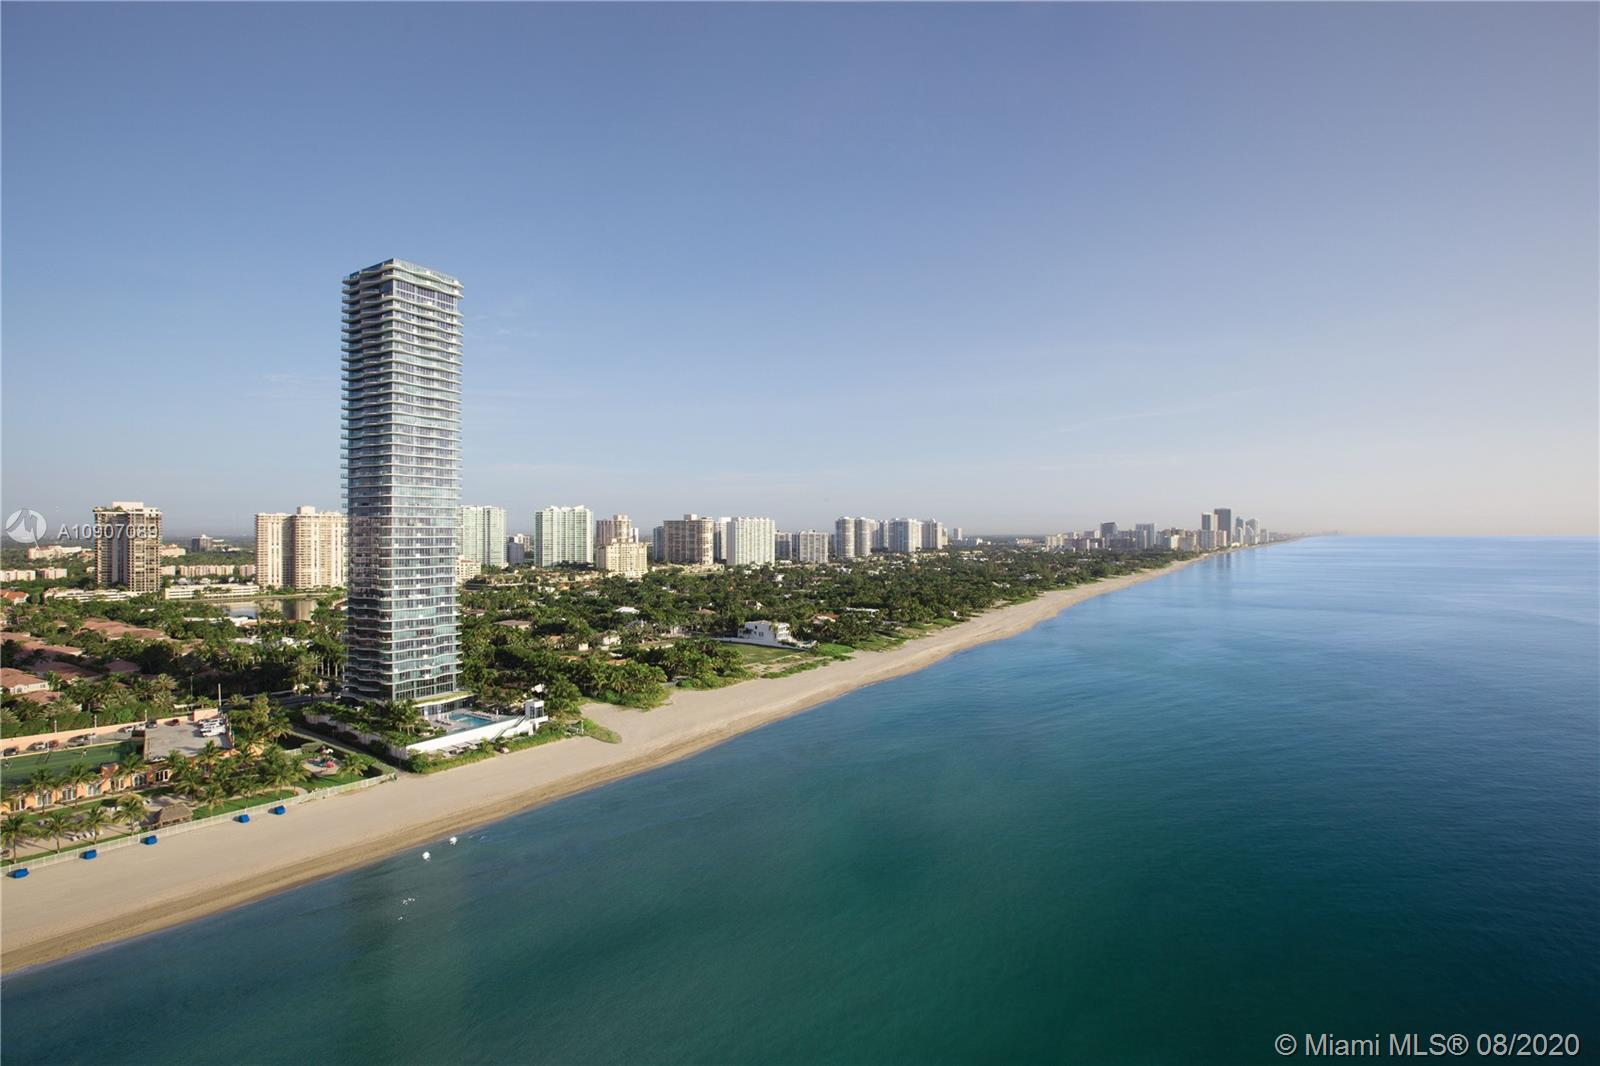 19575 Collins Ave, Unit #3 Luxury Real Estate